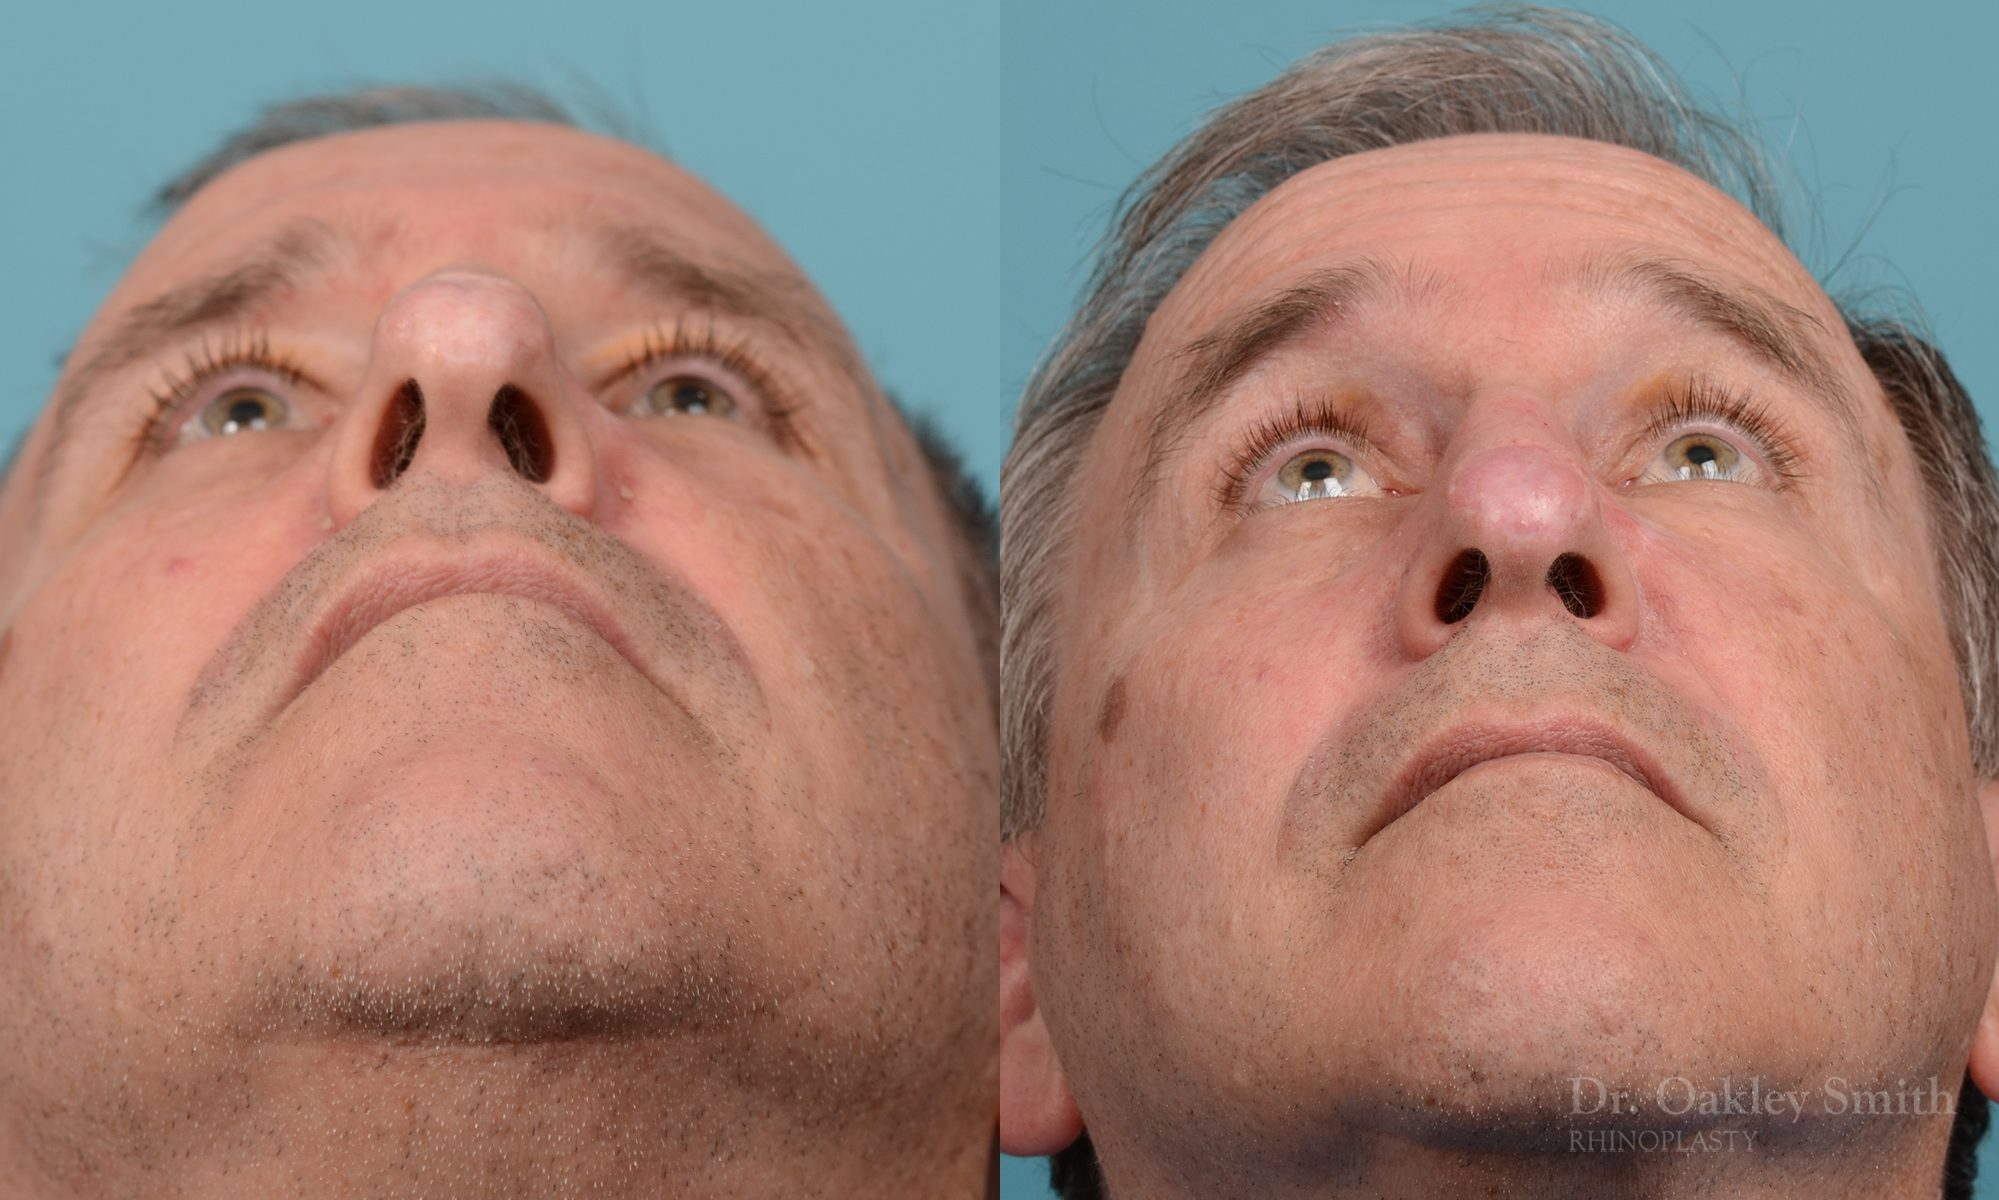 scar removal from previous surgery